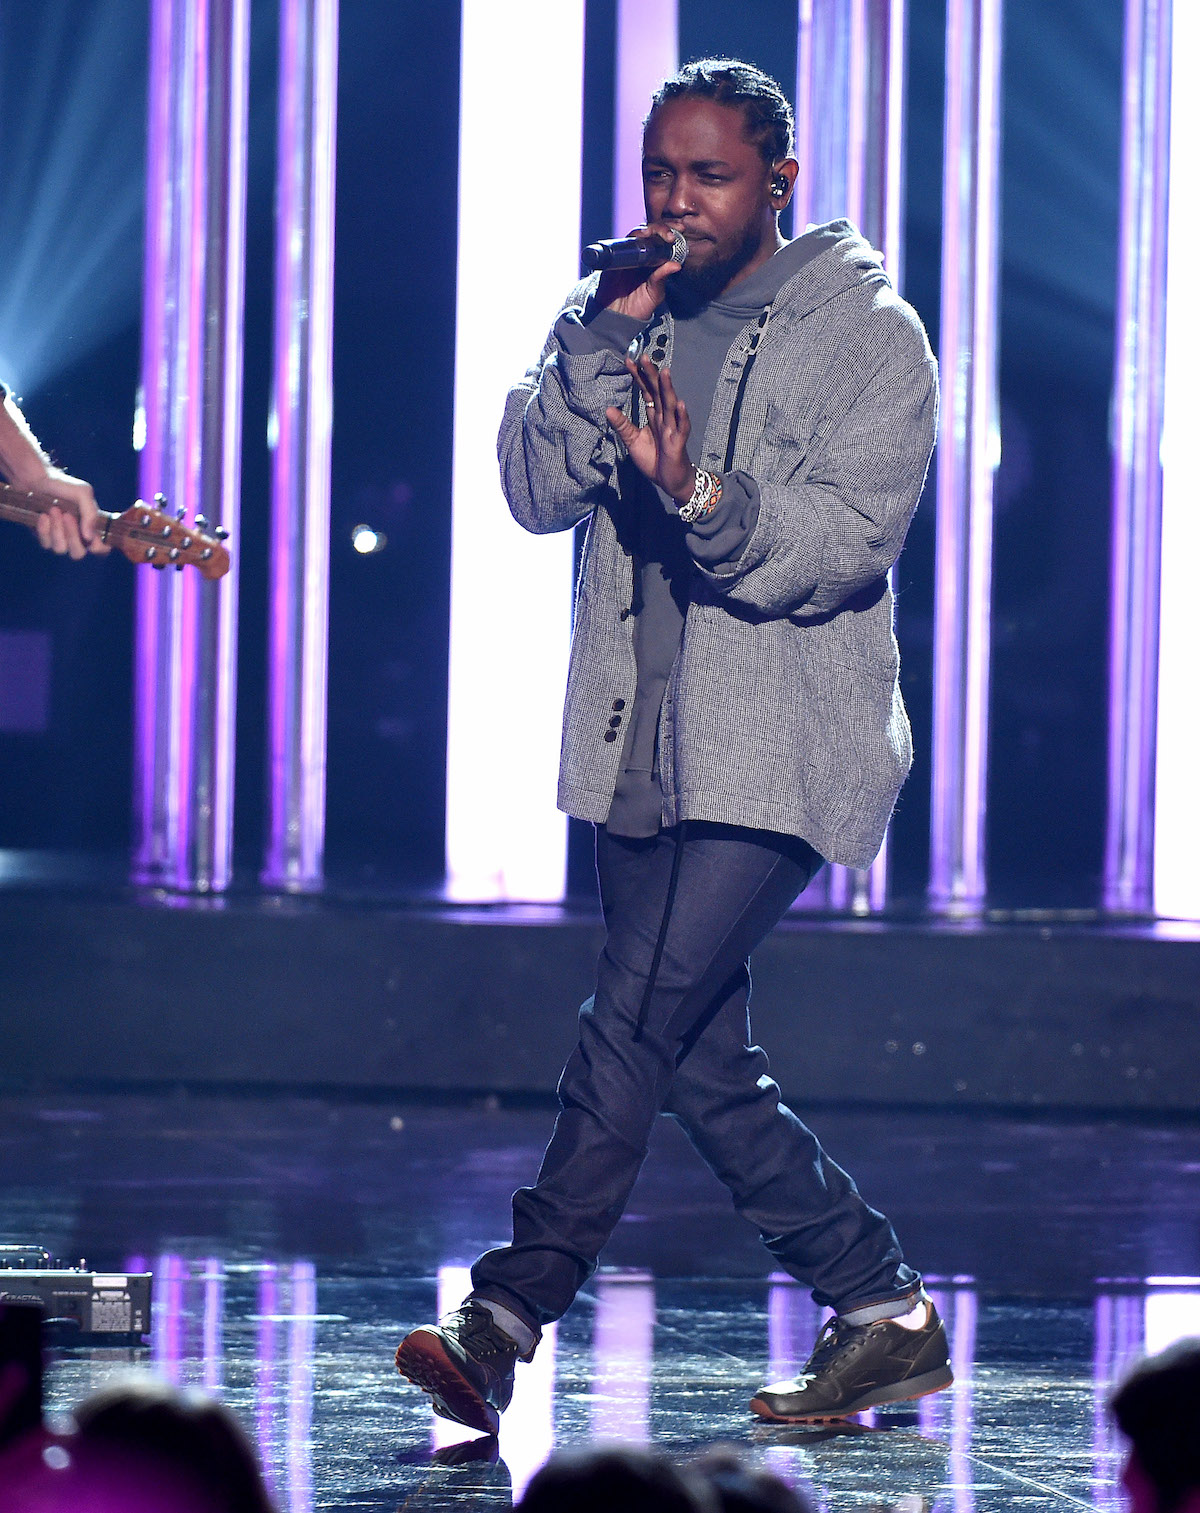 Mandatory Credit: Photo by Frank Micelotta/REX/Shutterstock (7449898cb) Kendrick Lamar American Music Awards, Show, Los Angeles, USA - 20 Nov 2016